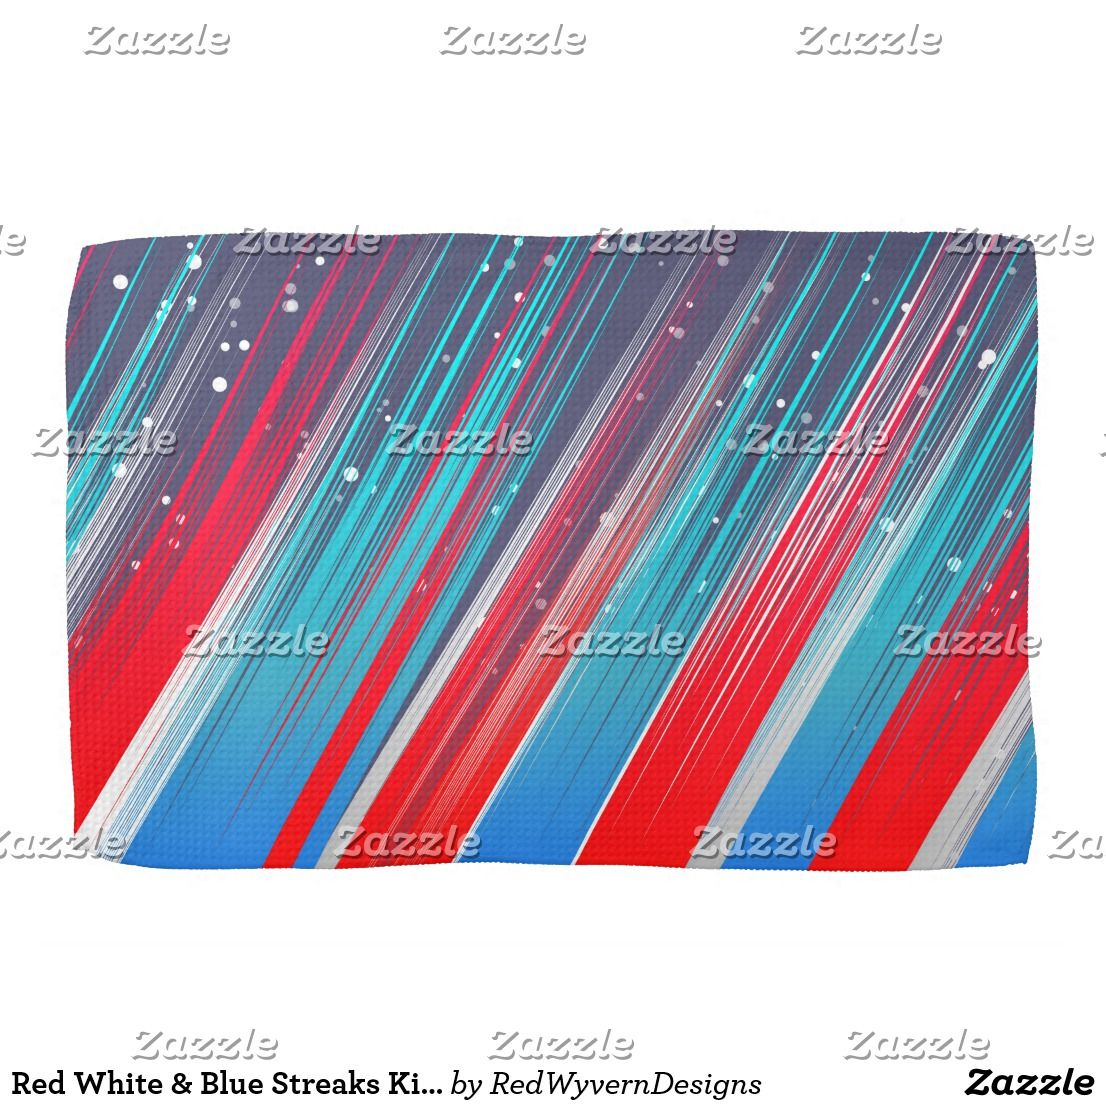 Red White Blue Streaks Kitchen Towels Zazzle Com Red White